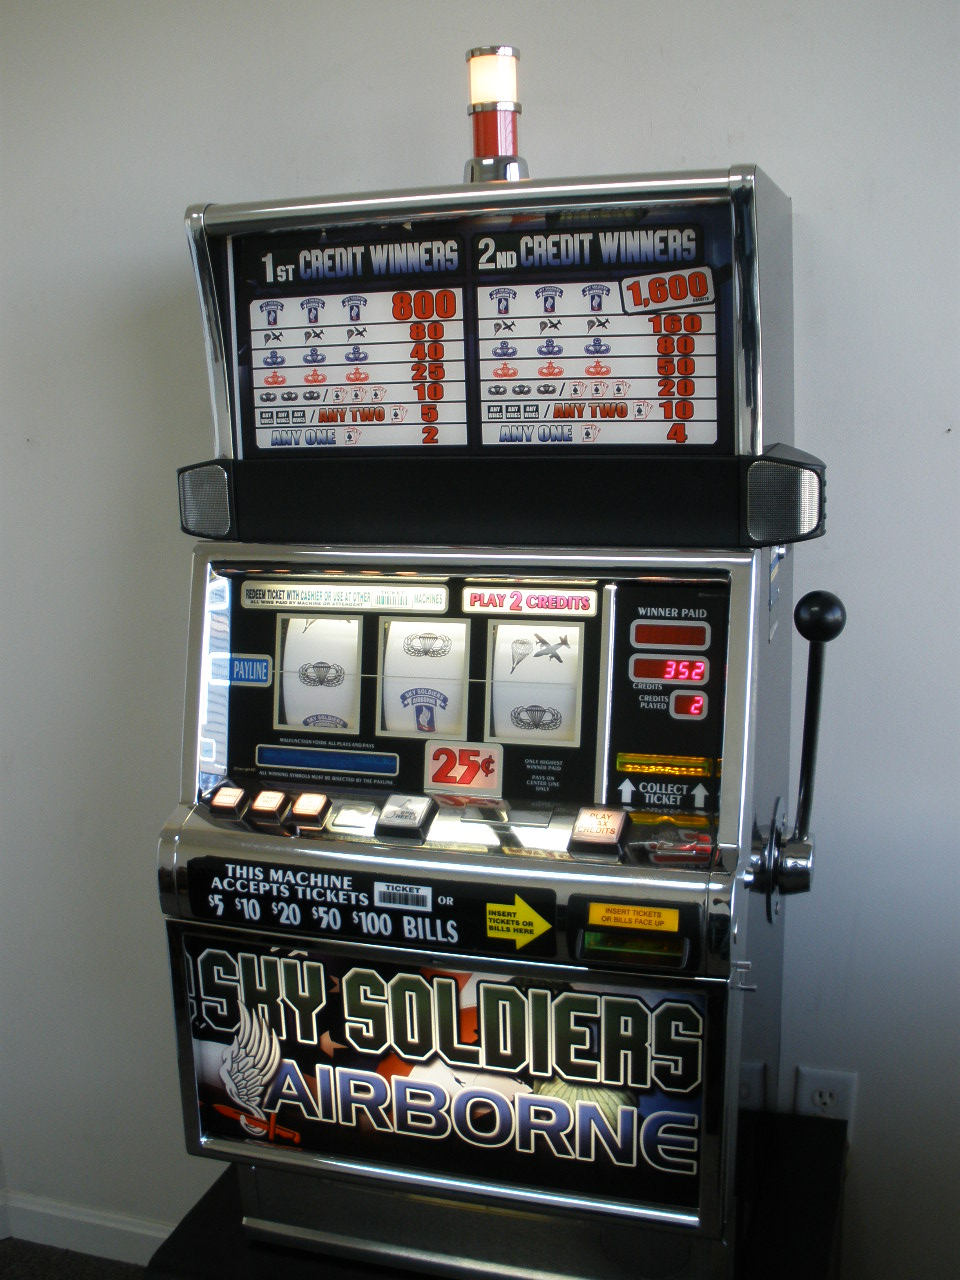 IGT SKY SOLDIERS AIRBORNE CUSTOM S2000 SLOT MACHINE For